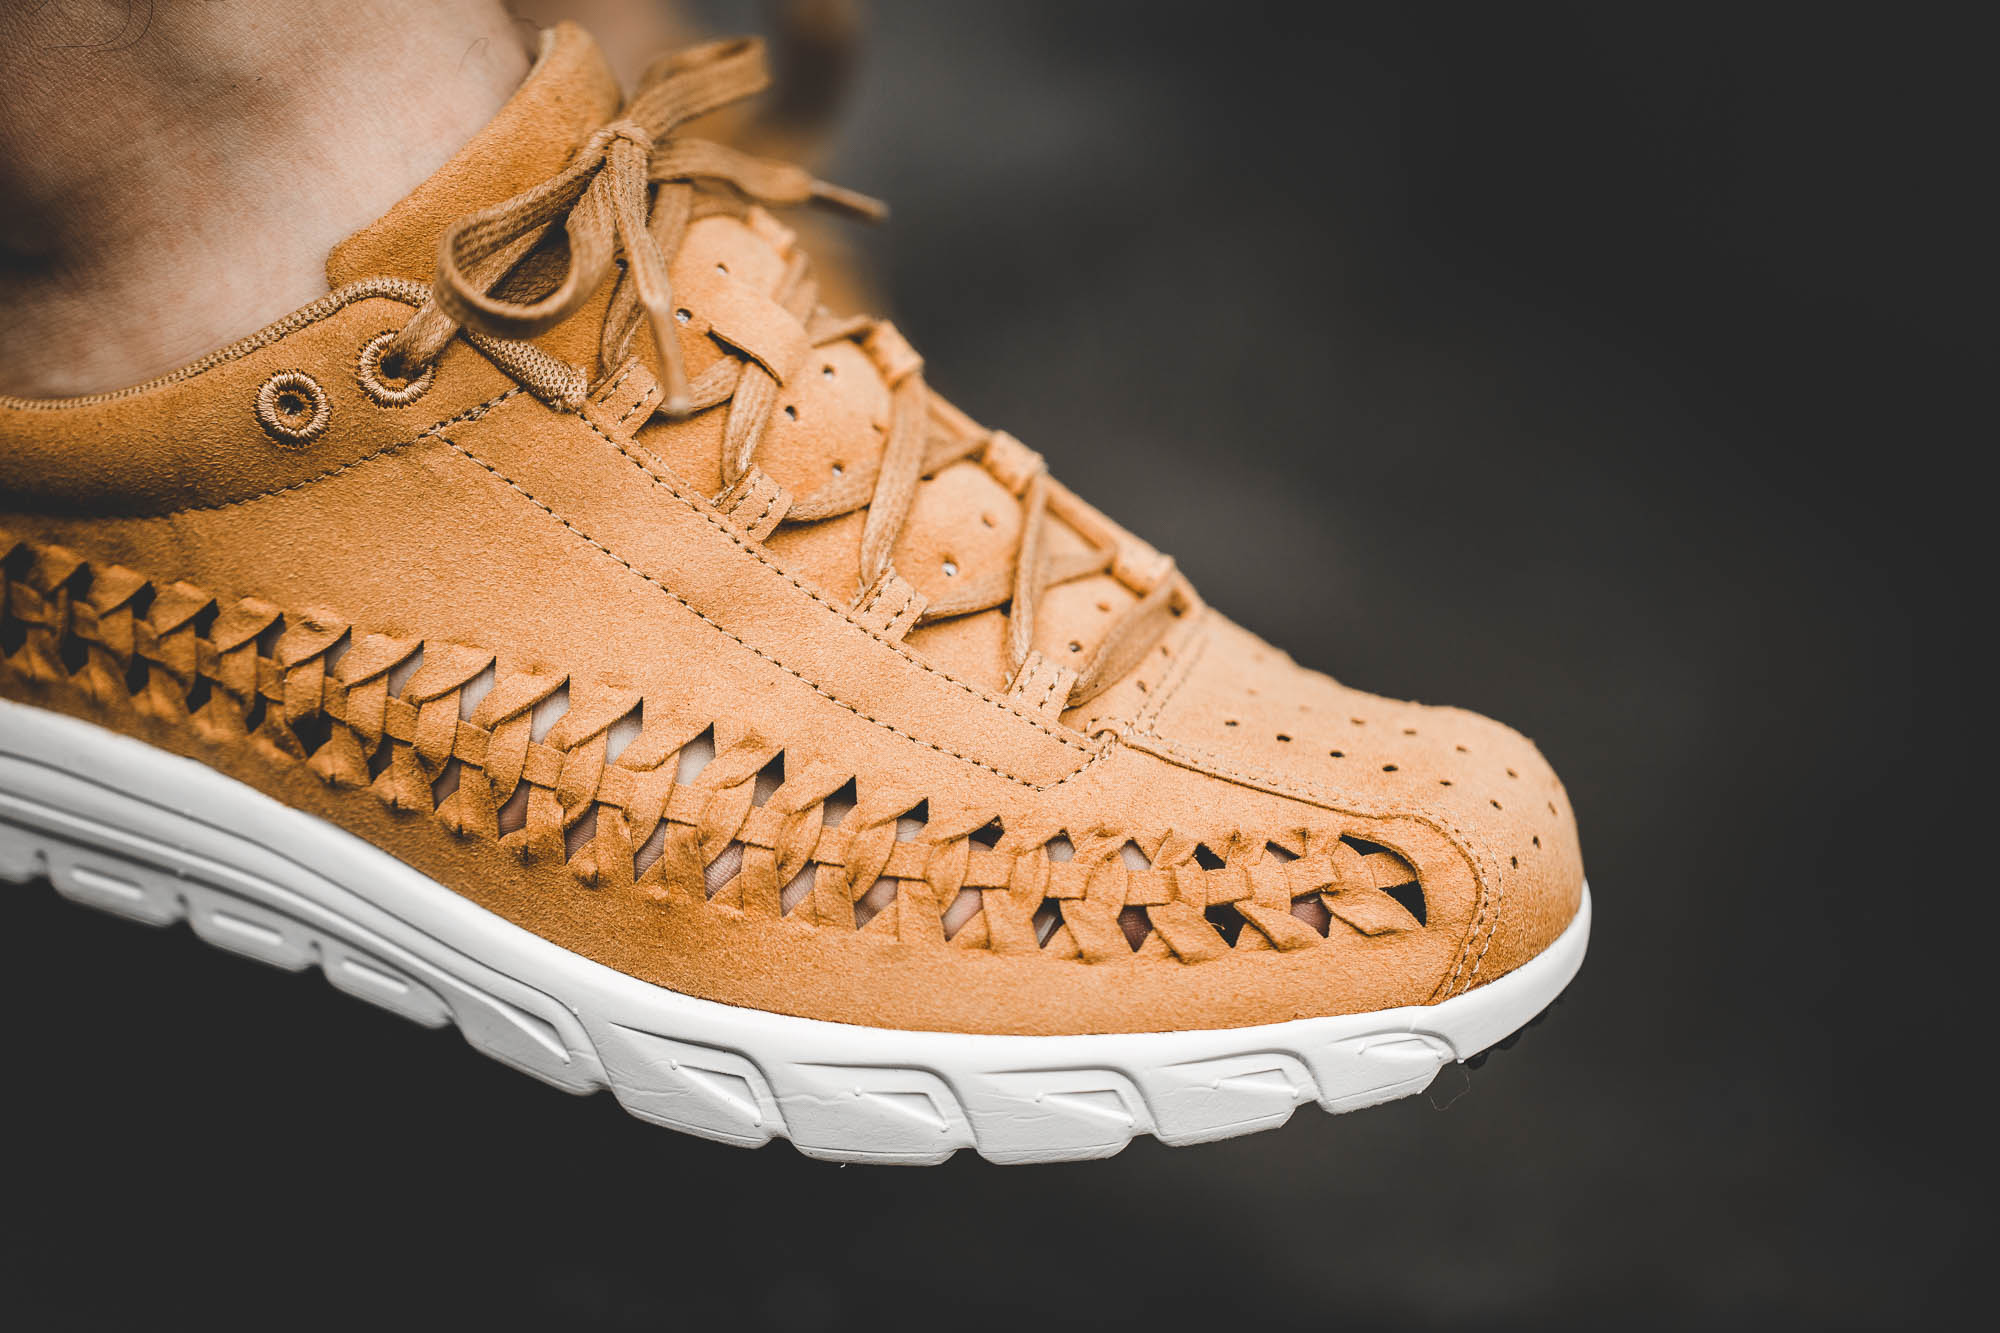 giay-nike-mayfly-woven-curry-2